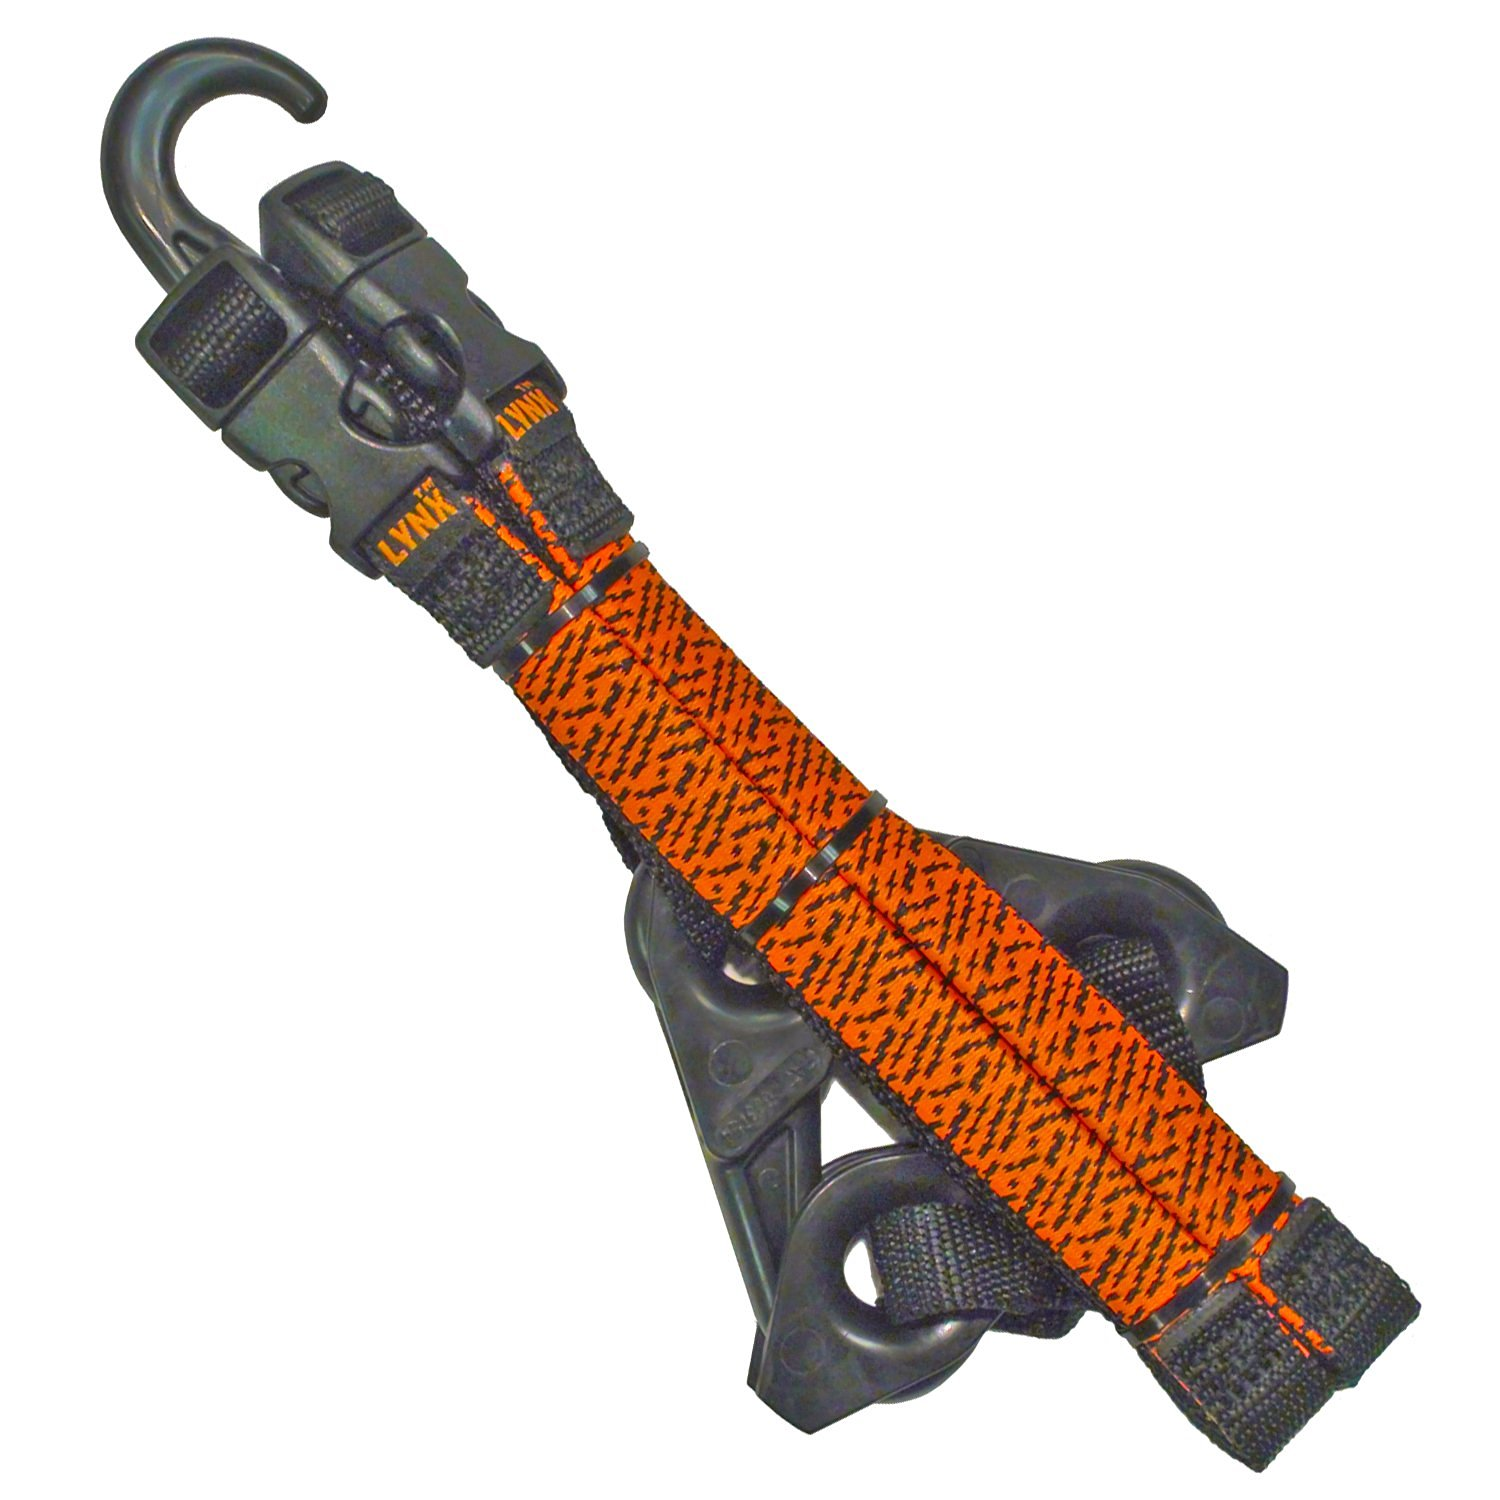 LYNX Hooks® Blaze Orange Adjustable, Interlocking Gear Straps